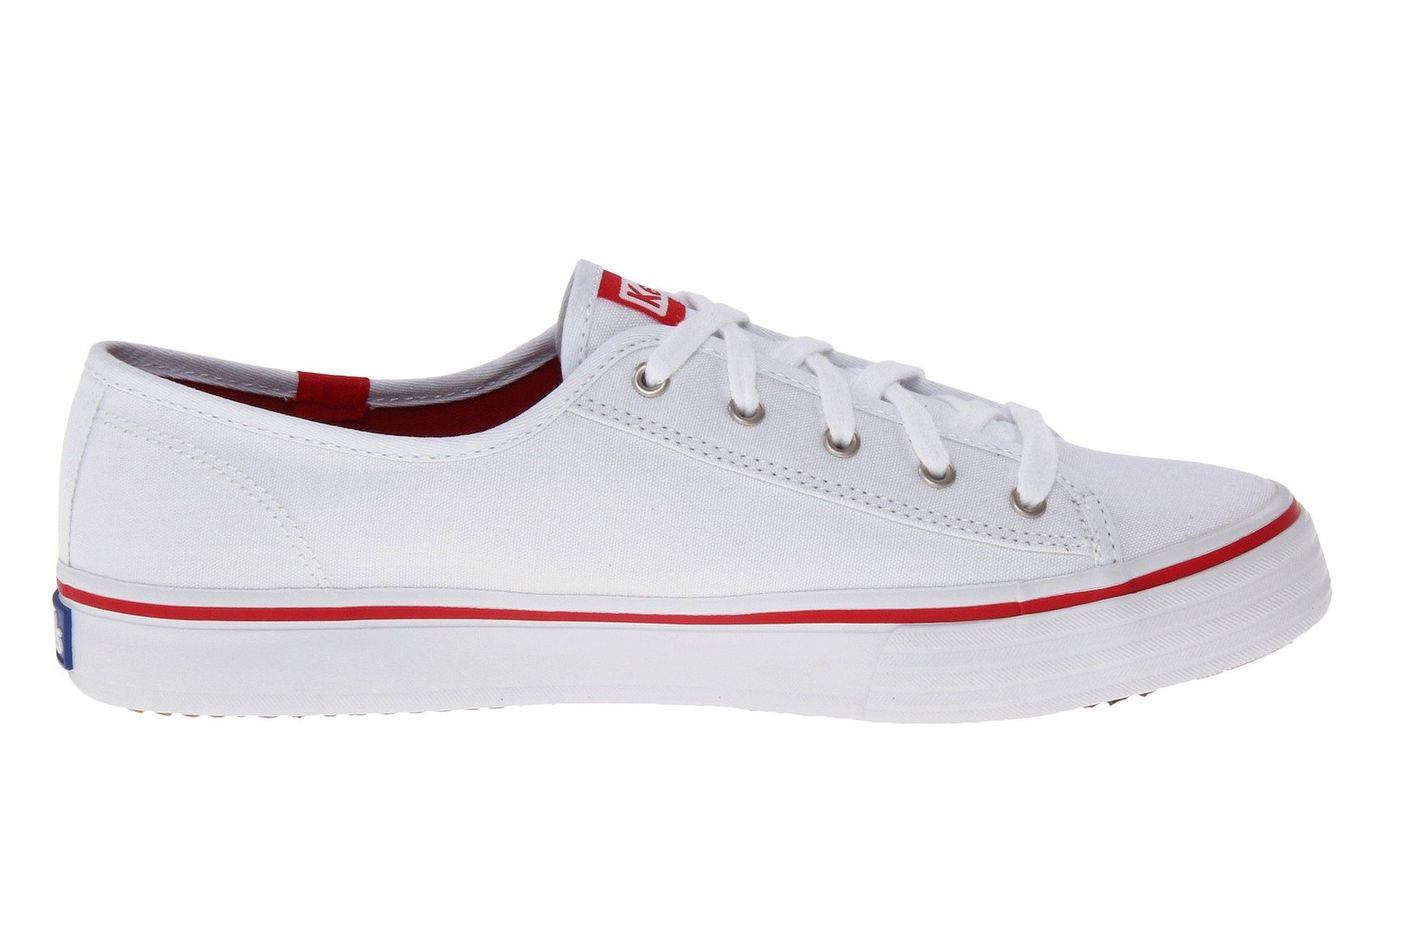 Keds Double Up Core Fashion Sneaker